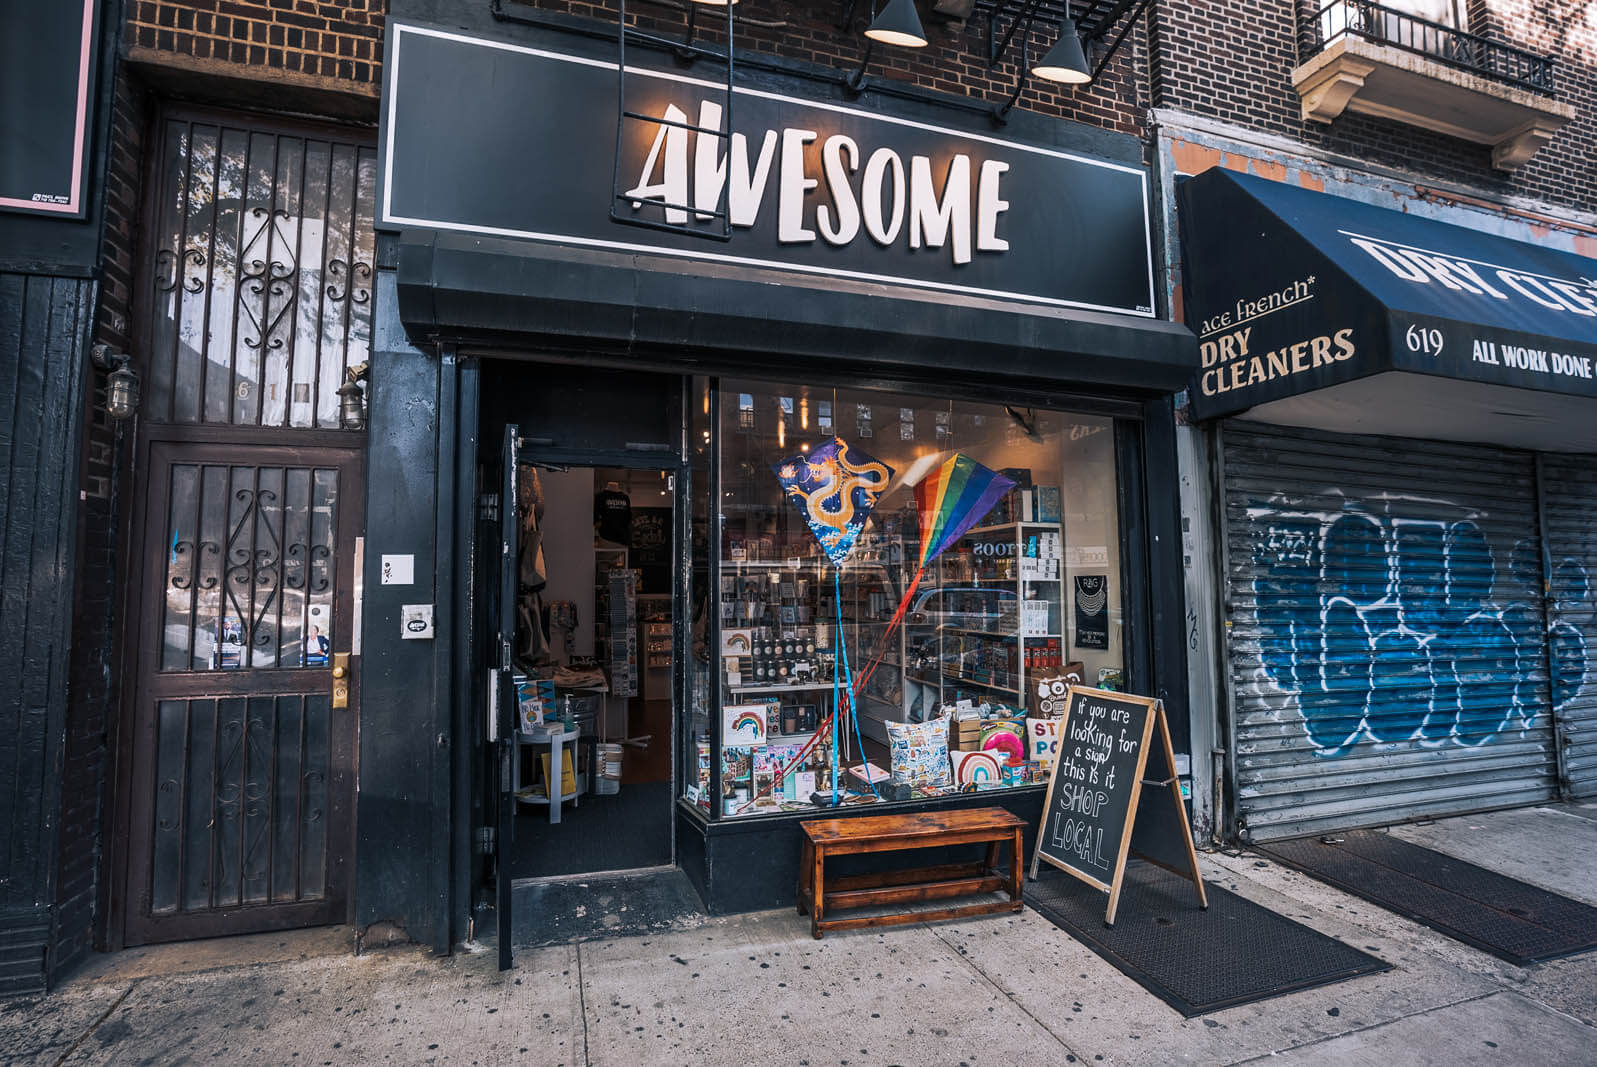 Awesome Brooklyn gift store on Flatbush Ave in Prospect Lefferts Gardens